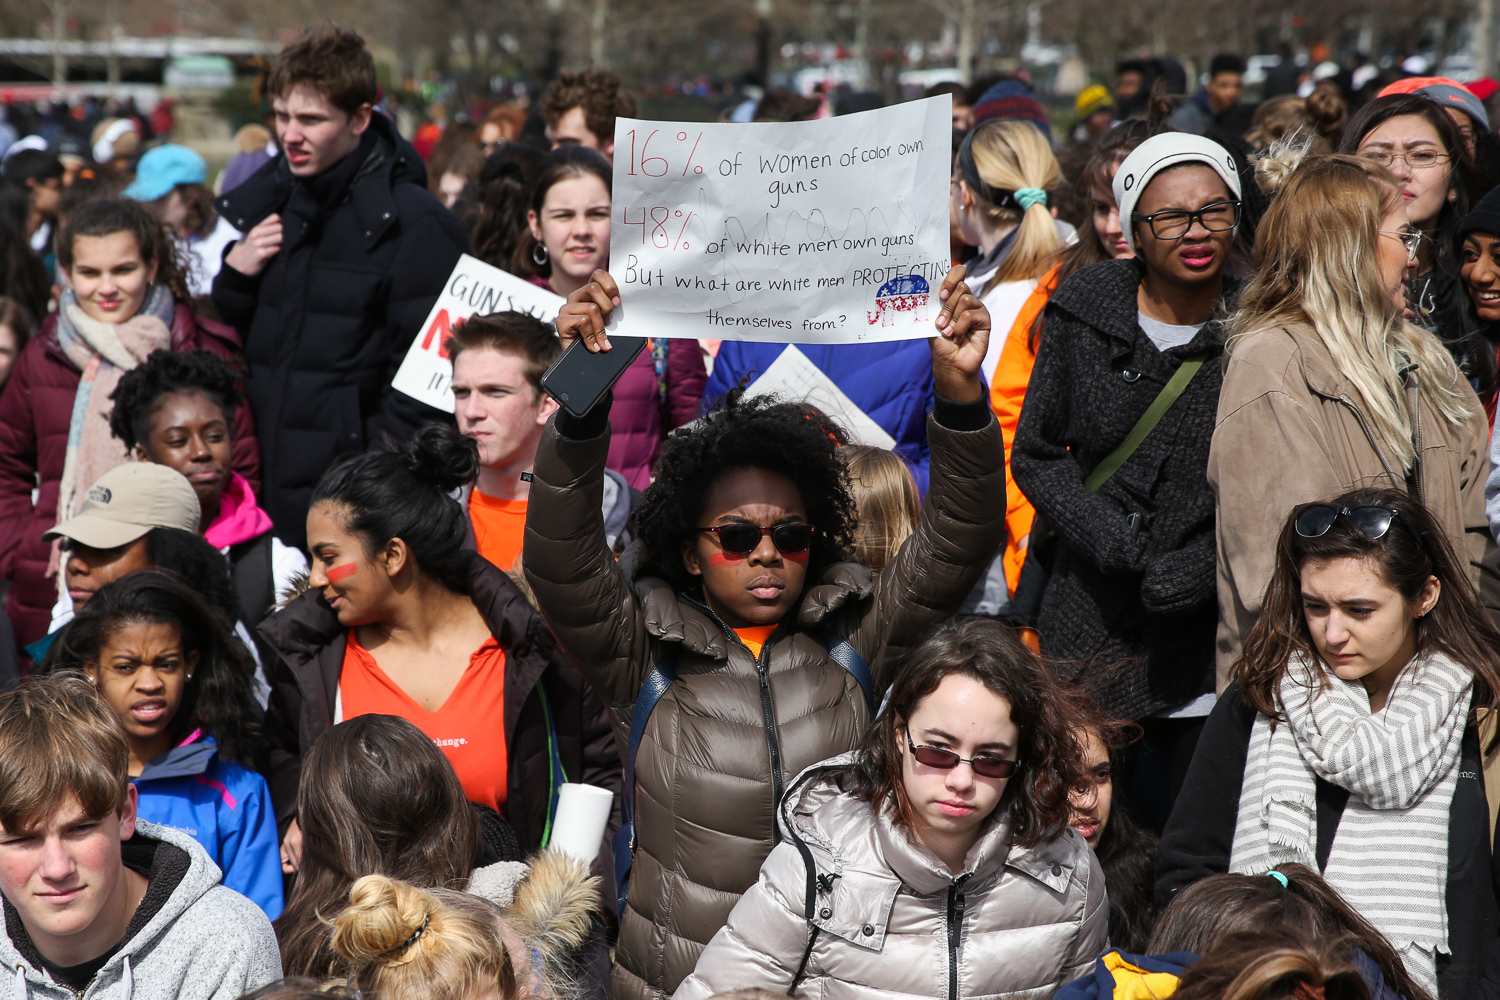 Hundreds of students from around the DMV left their classes at 10 a.m this morning and marched from The White House to Capitol Hill to demand action on gun control this morning. Today marks one month since 17 students were murdered in a shooting at{ }Marjory Stoneman Douglas High School in Parkland, Florida. Although there have been calls for gun control following school shootings in the past, this mass murder has has sparked a movement lead by young people frustrated with the lack of legislation. Students on Capitol Hill talked to lawmakers and gun control advocates in a peaceful demonstration. (Amanda Andrade-Rhoades/DC Refined)